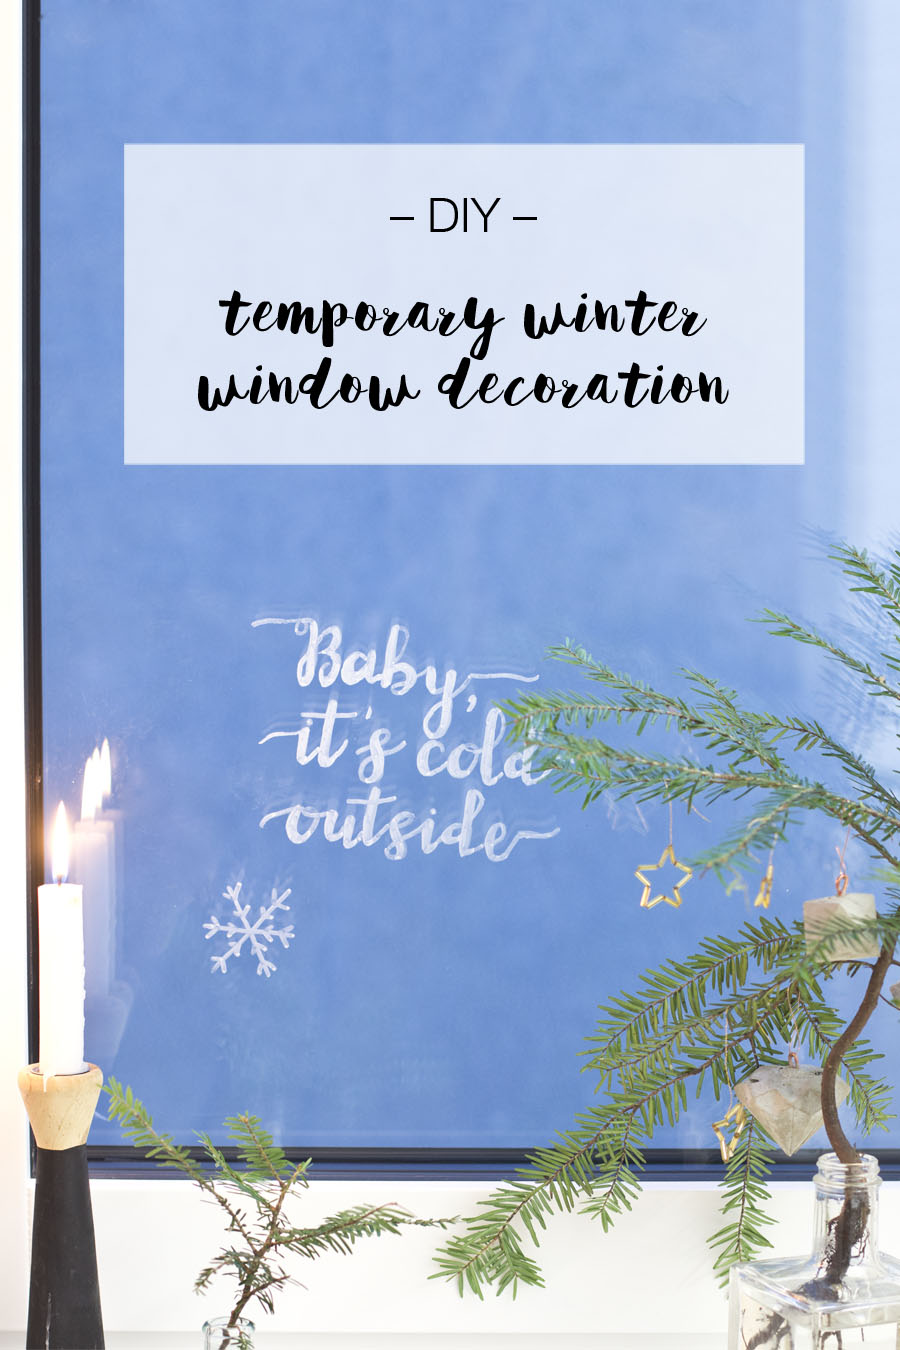 Temporary winter window decoration | LOOK WHA TI MADE ...